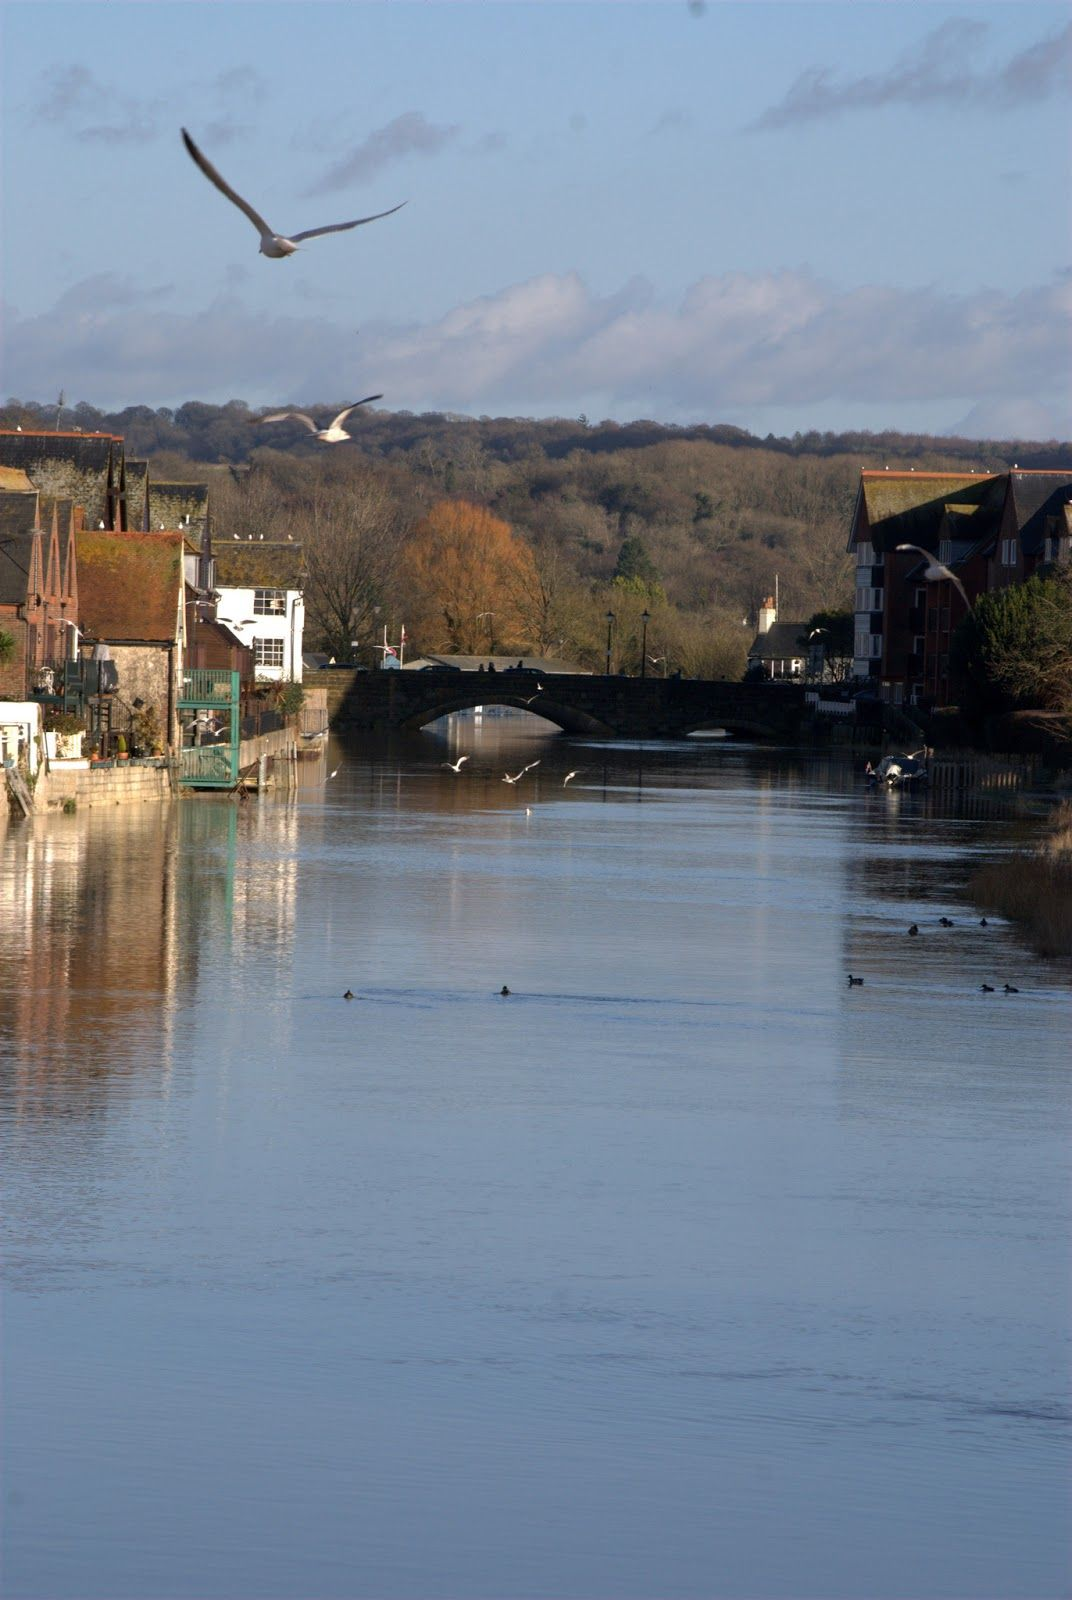 Arundel Eccentrics: Happy New Year, Giving up the Night Duty and walking in Arundel on New Years Day